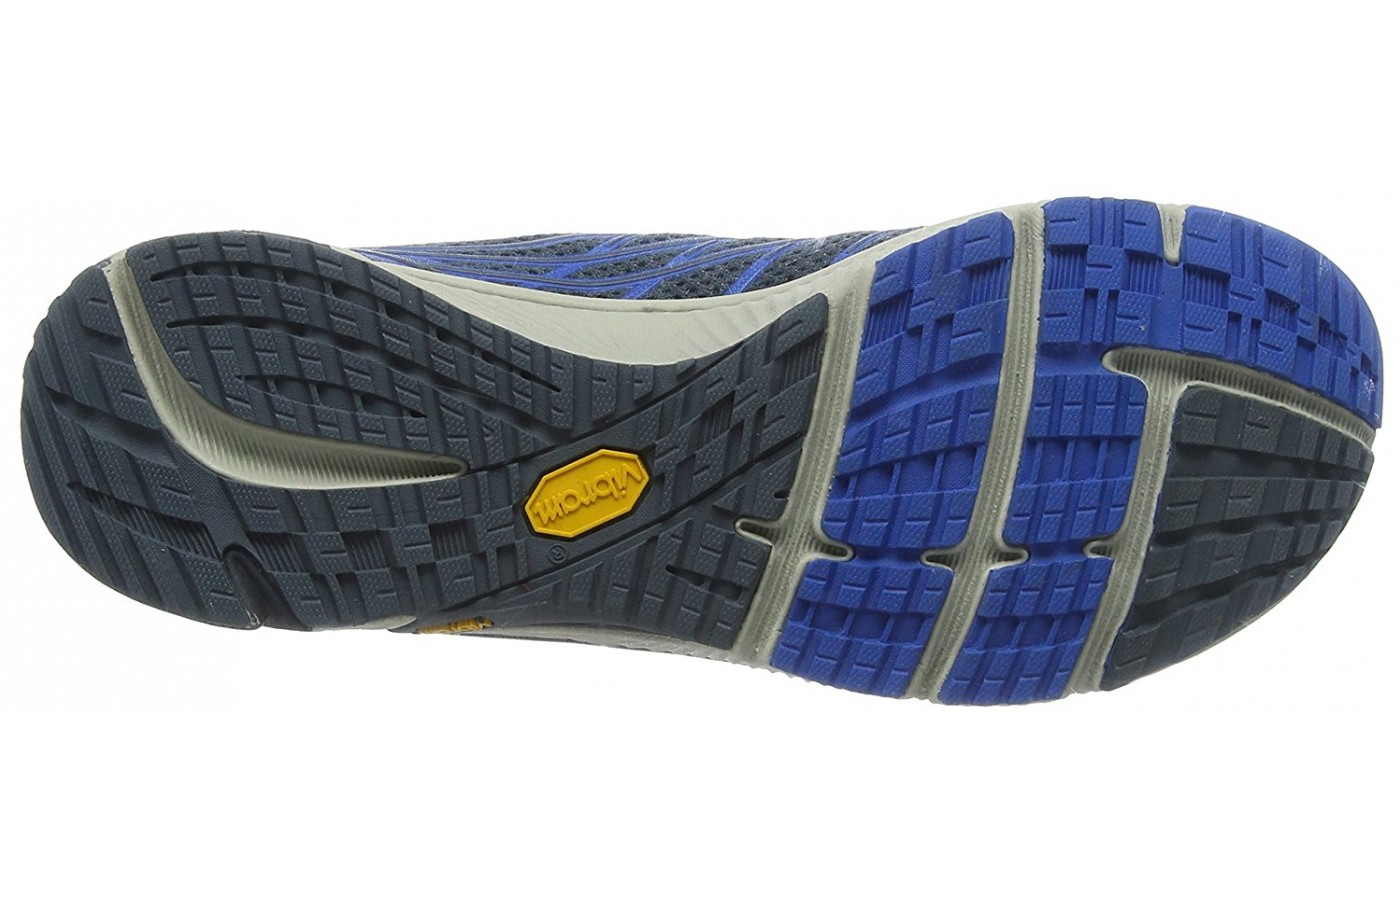 Merrell Bare Access 4 sole